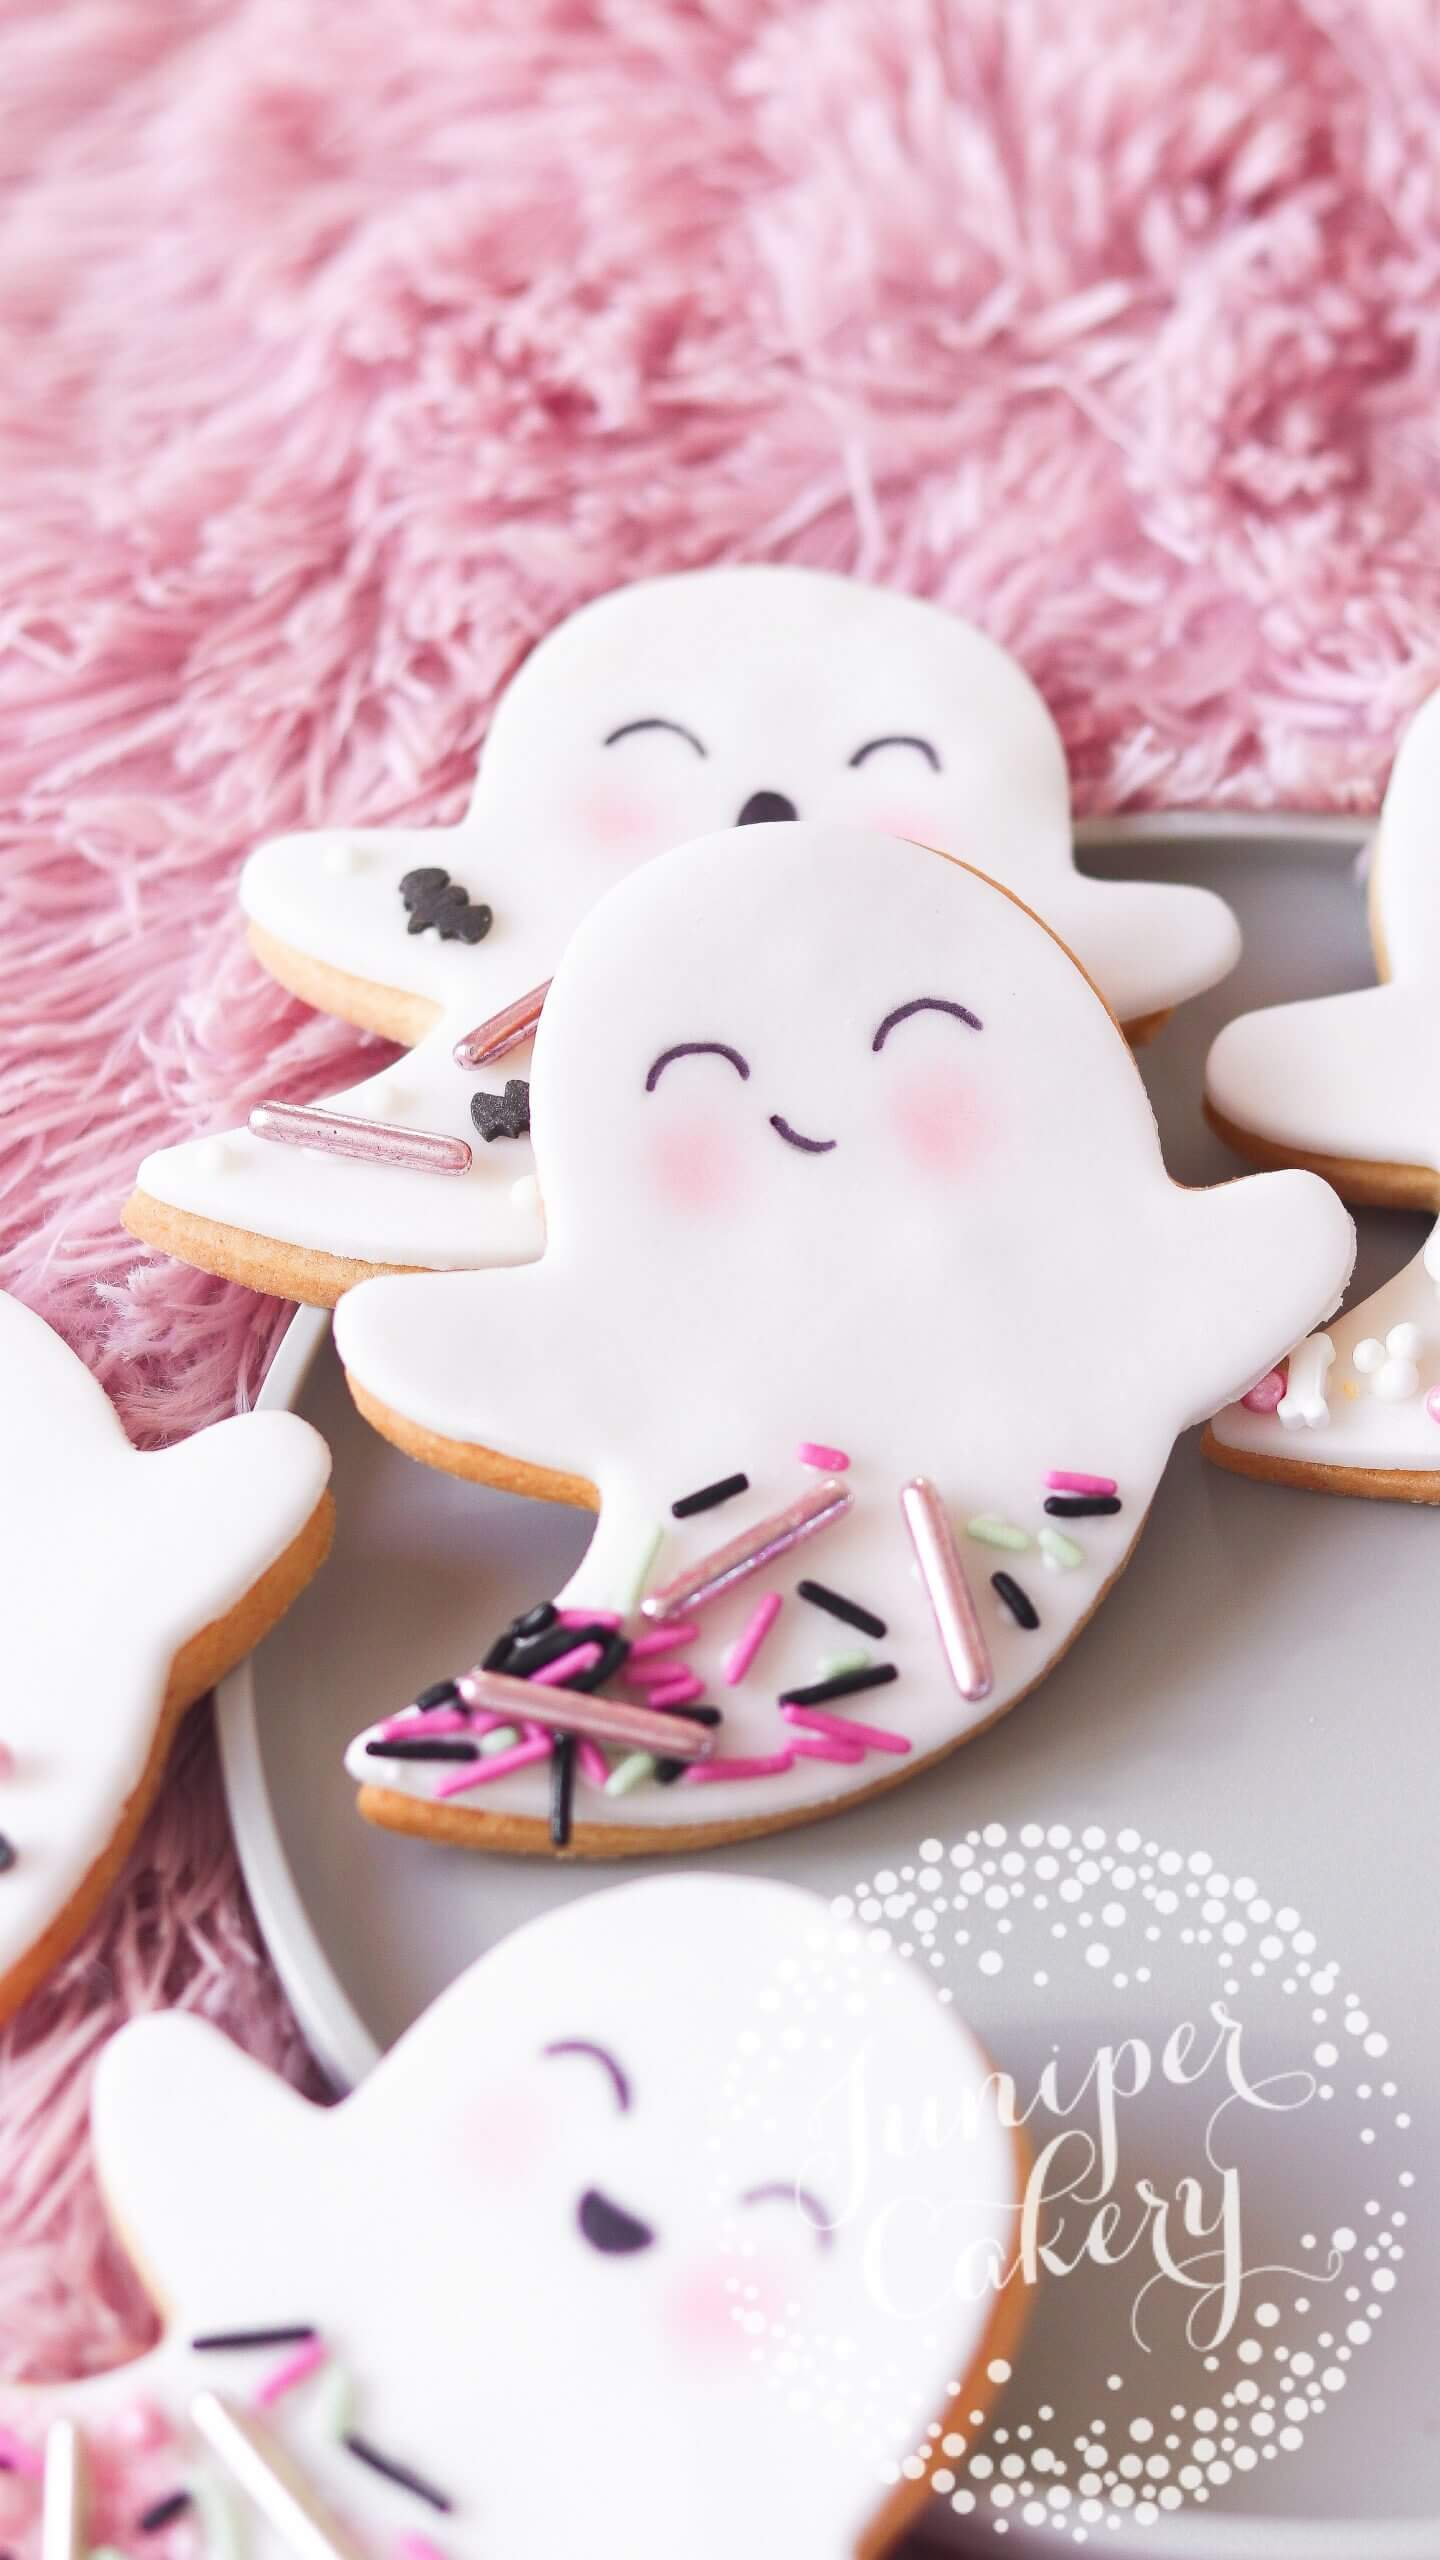 Fun ghost cookies for Halloween by Juniper Cakery